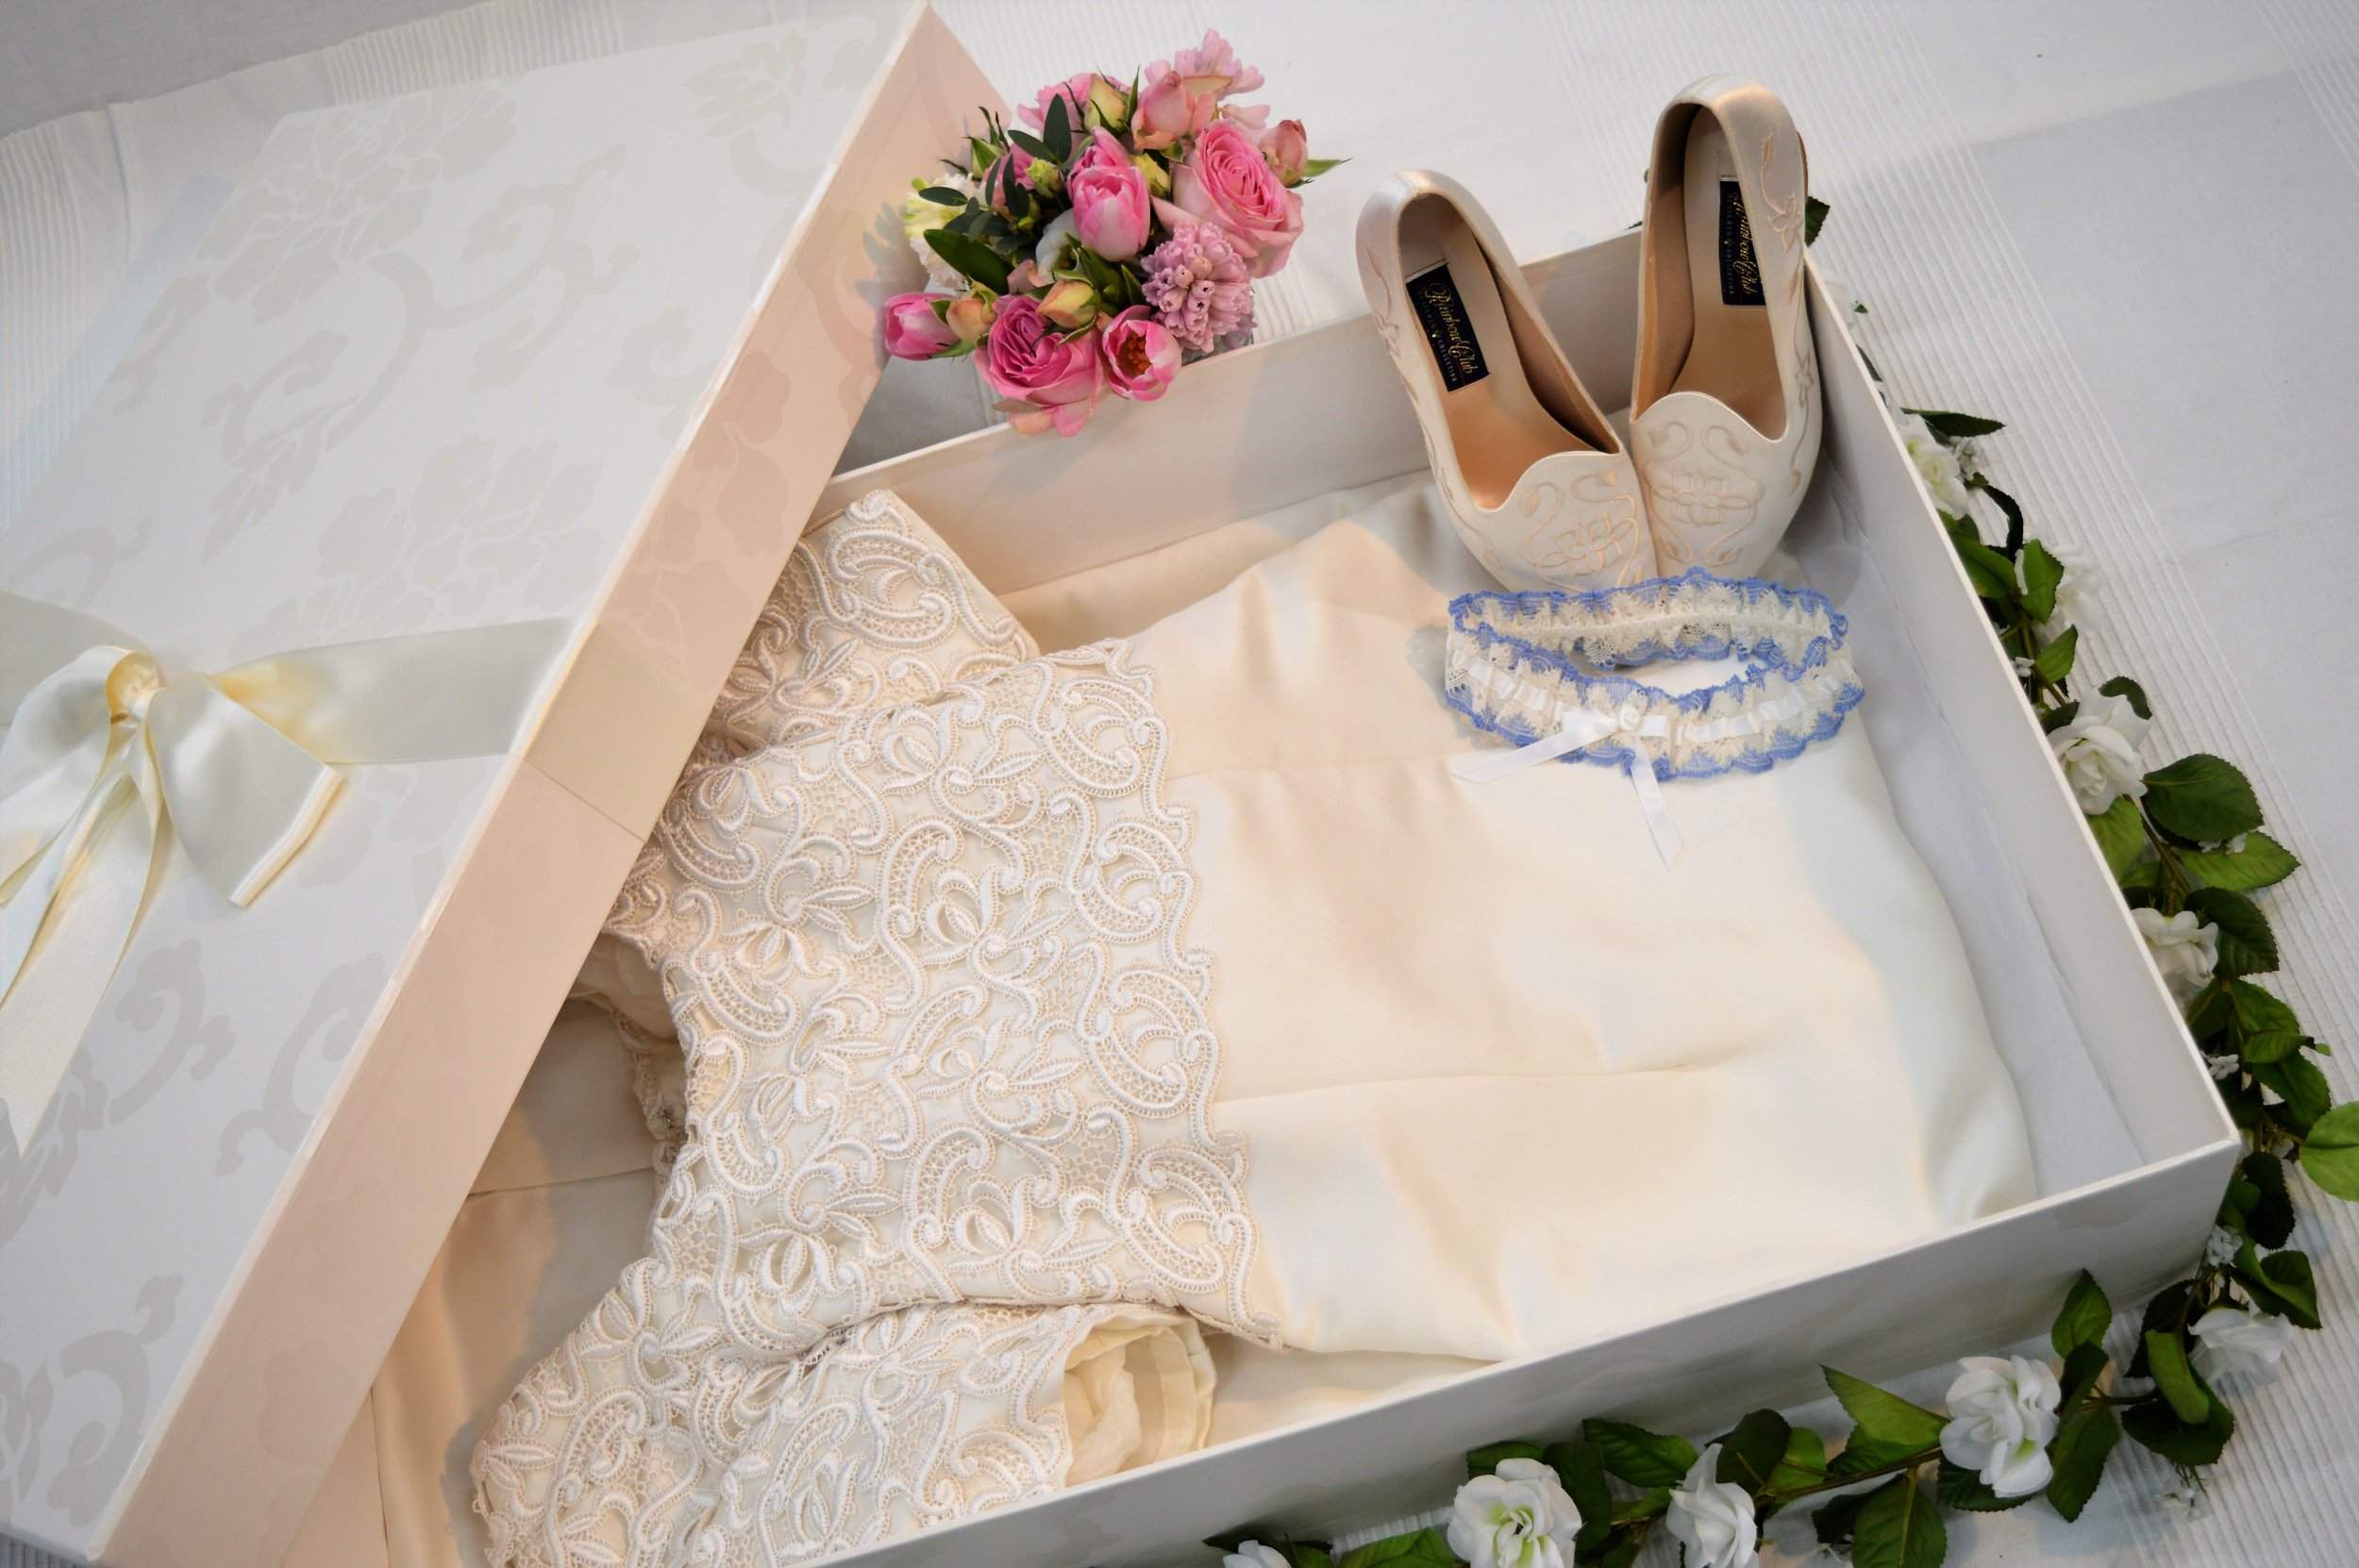 A wedding dress with shoes and garter.